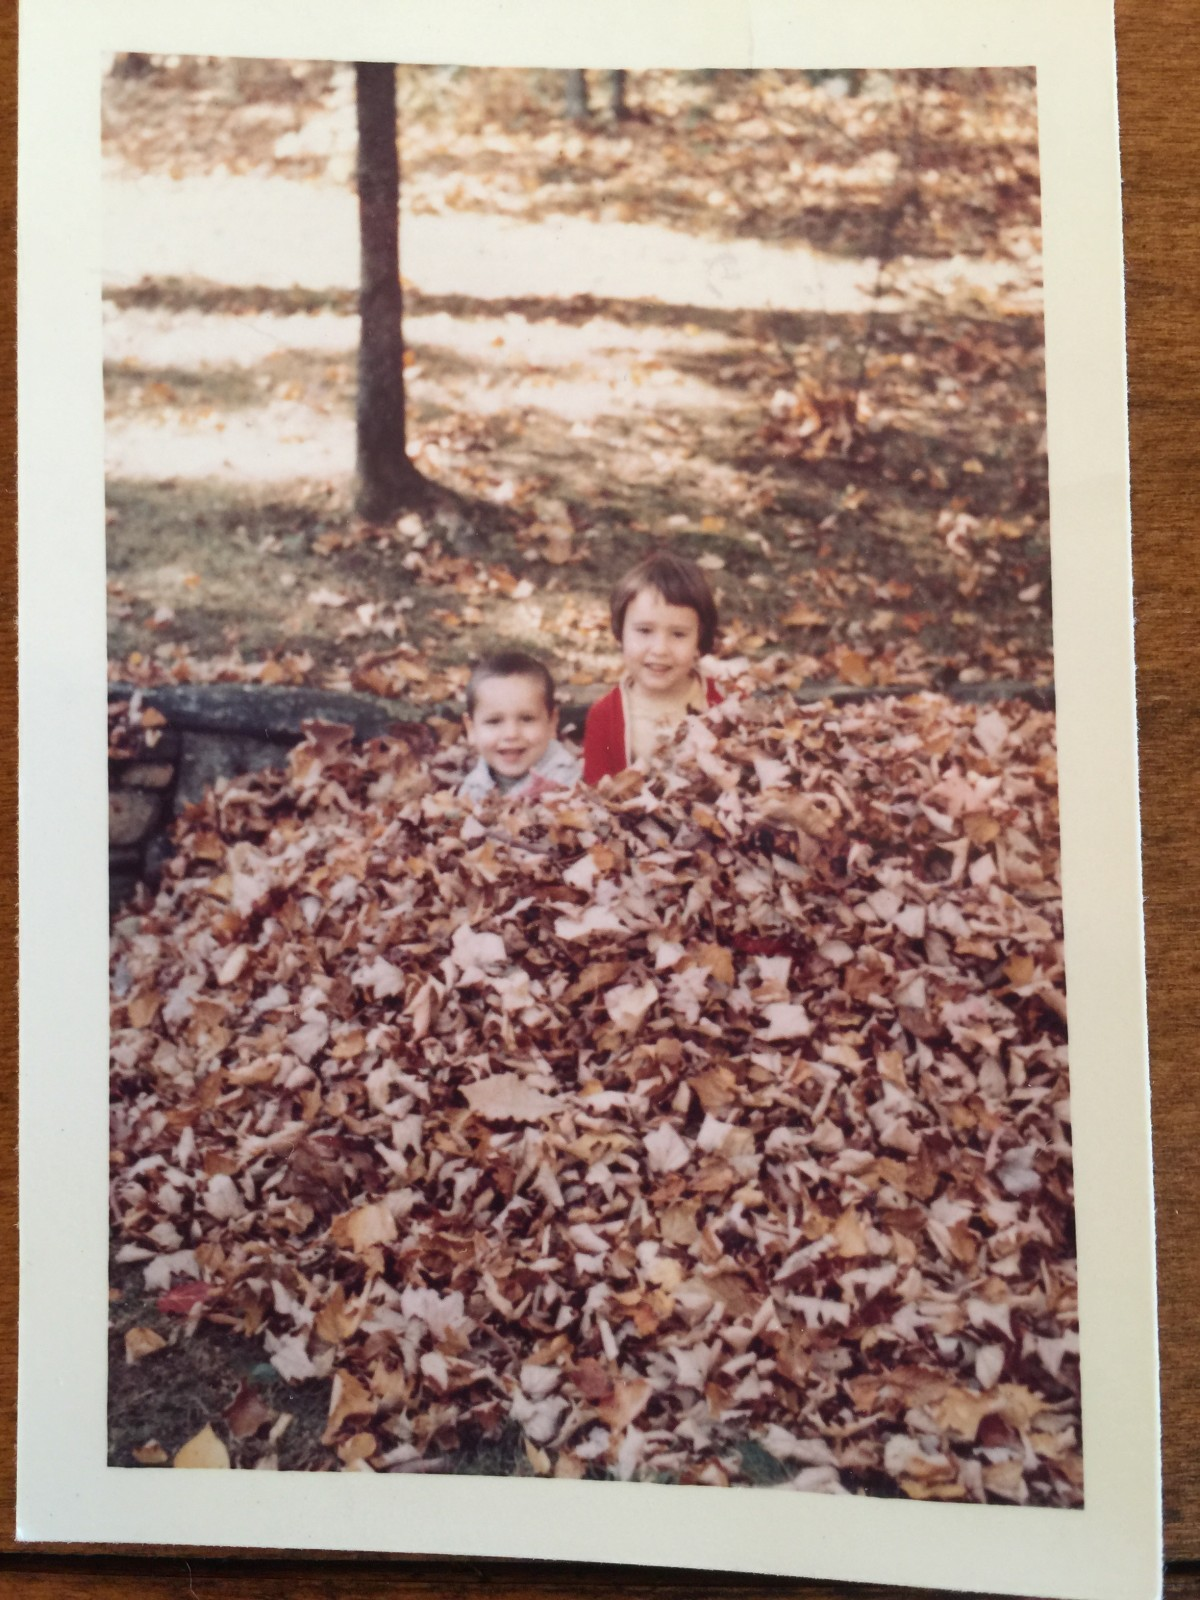 The pile of leaves